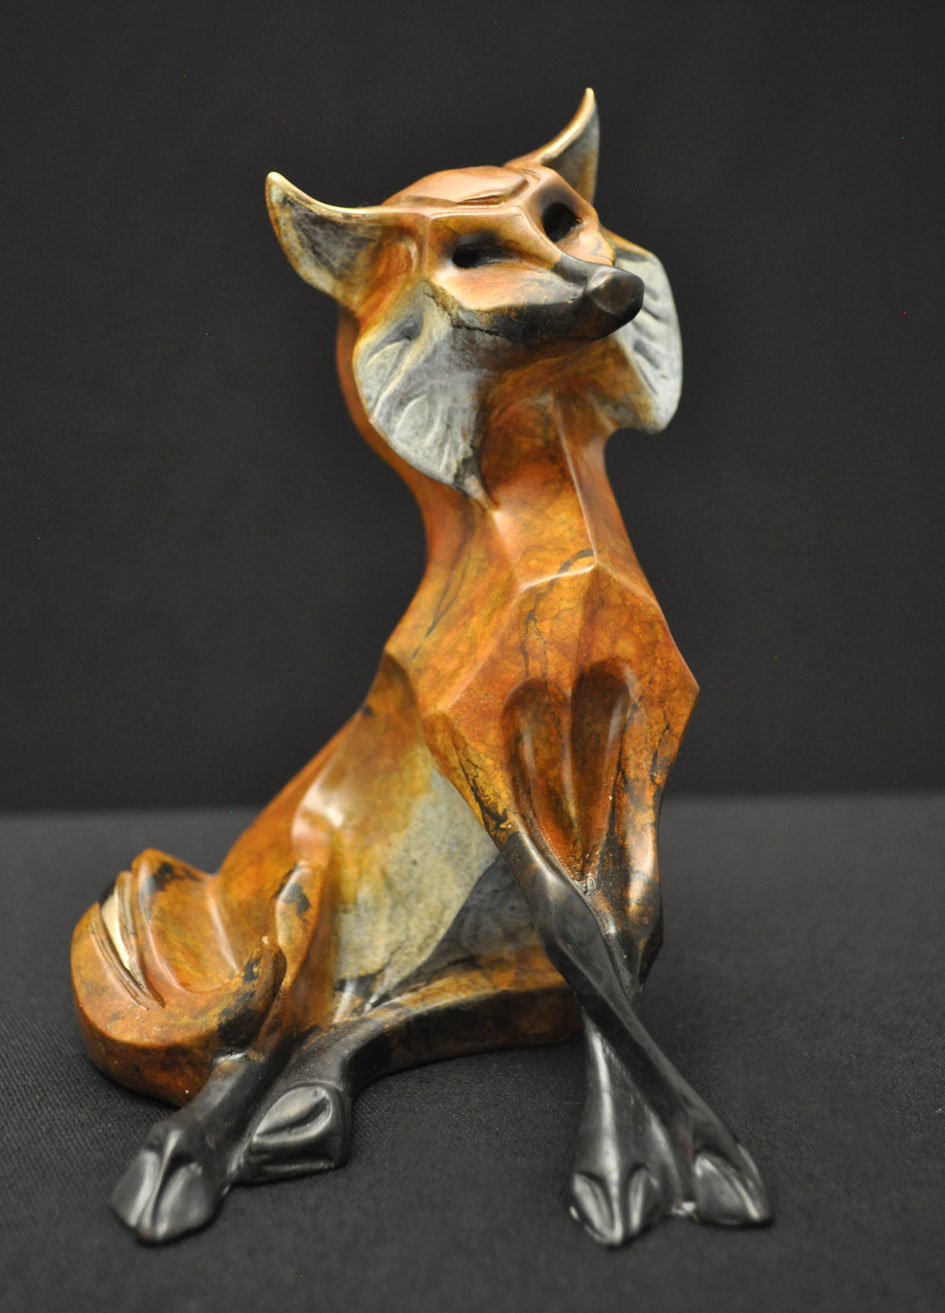 bronze-fox-sculpture-john-maisano---roxys-man-16.jpg